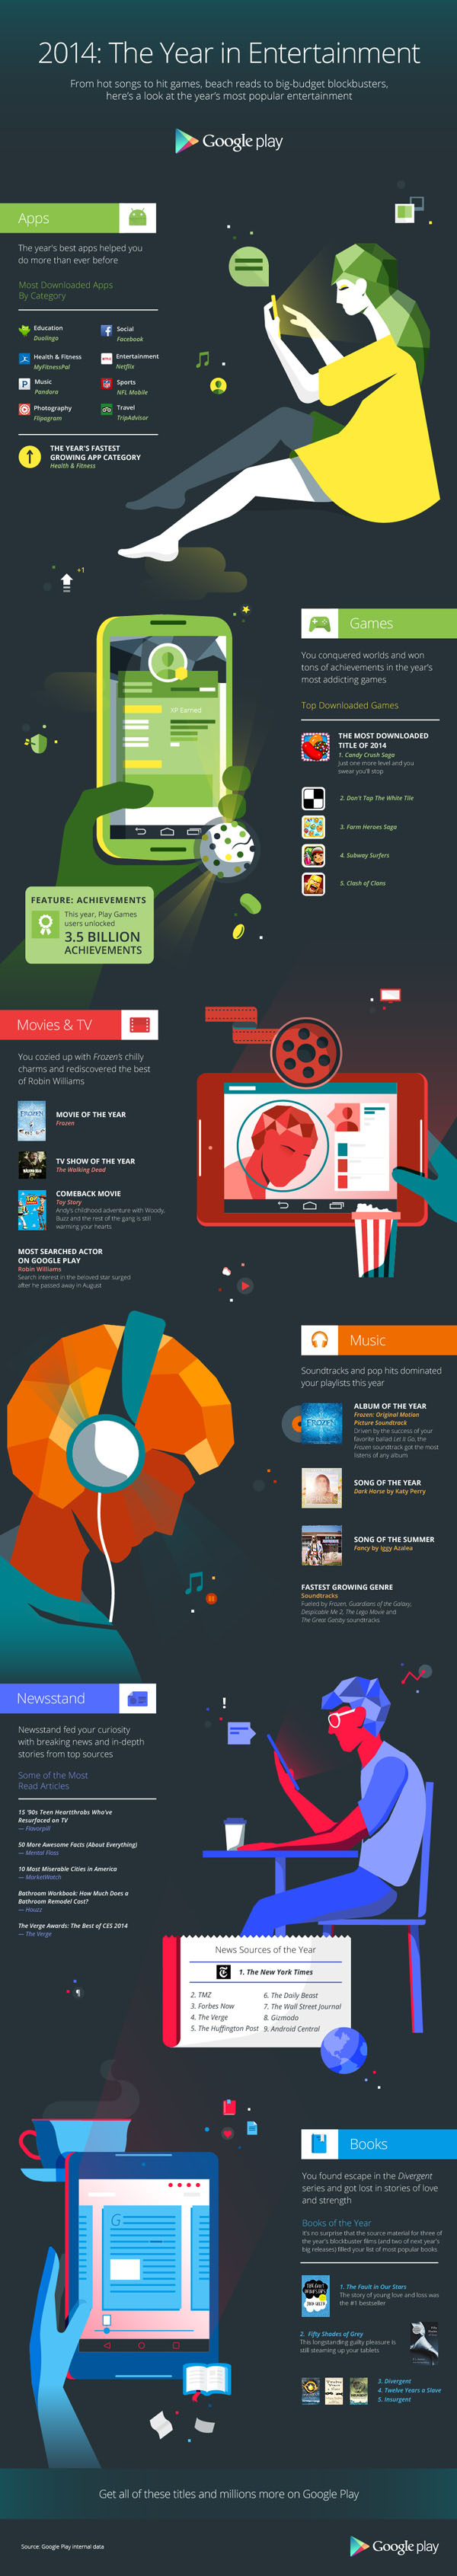 GooglePlay - The Year in Entertainment (click to view full-size)